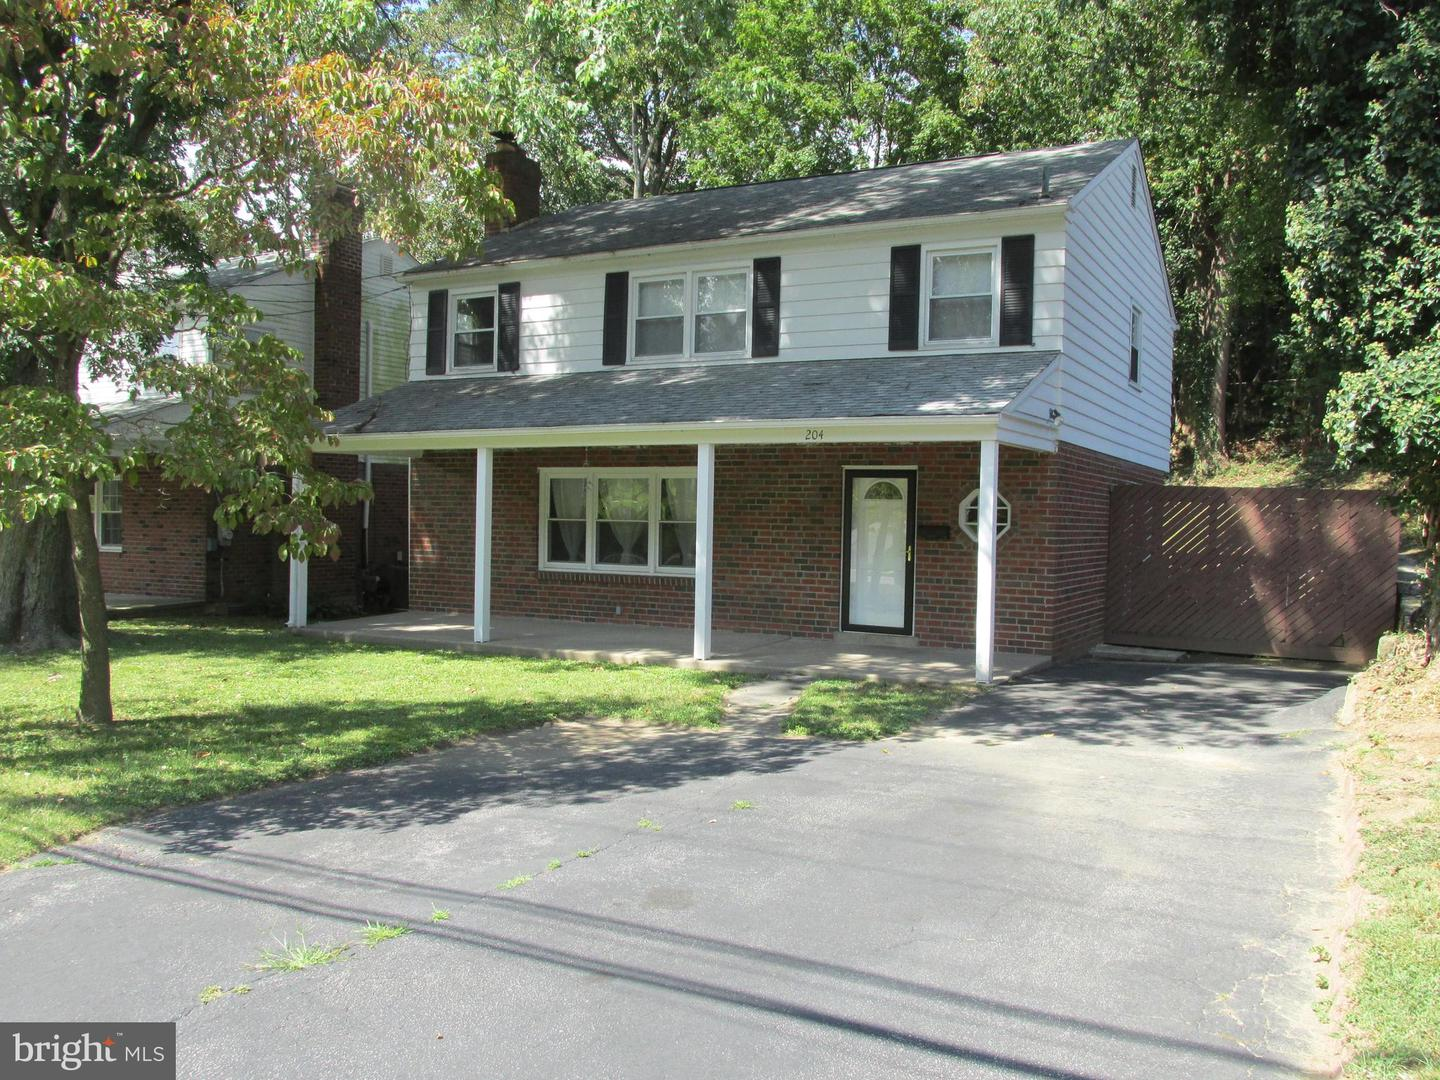 204 Glendale Road Havertown, PA 19083